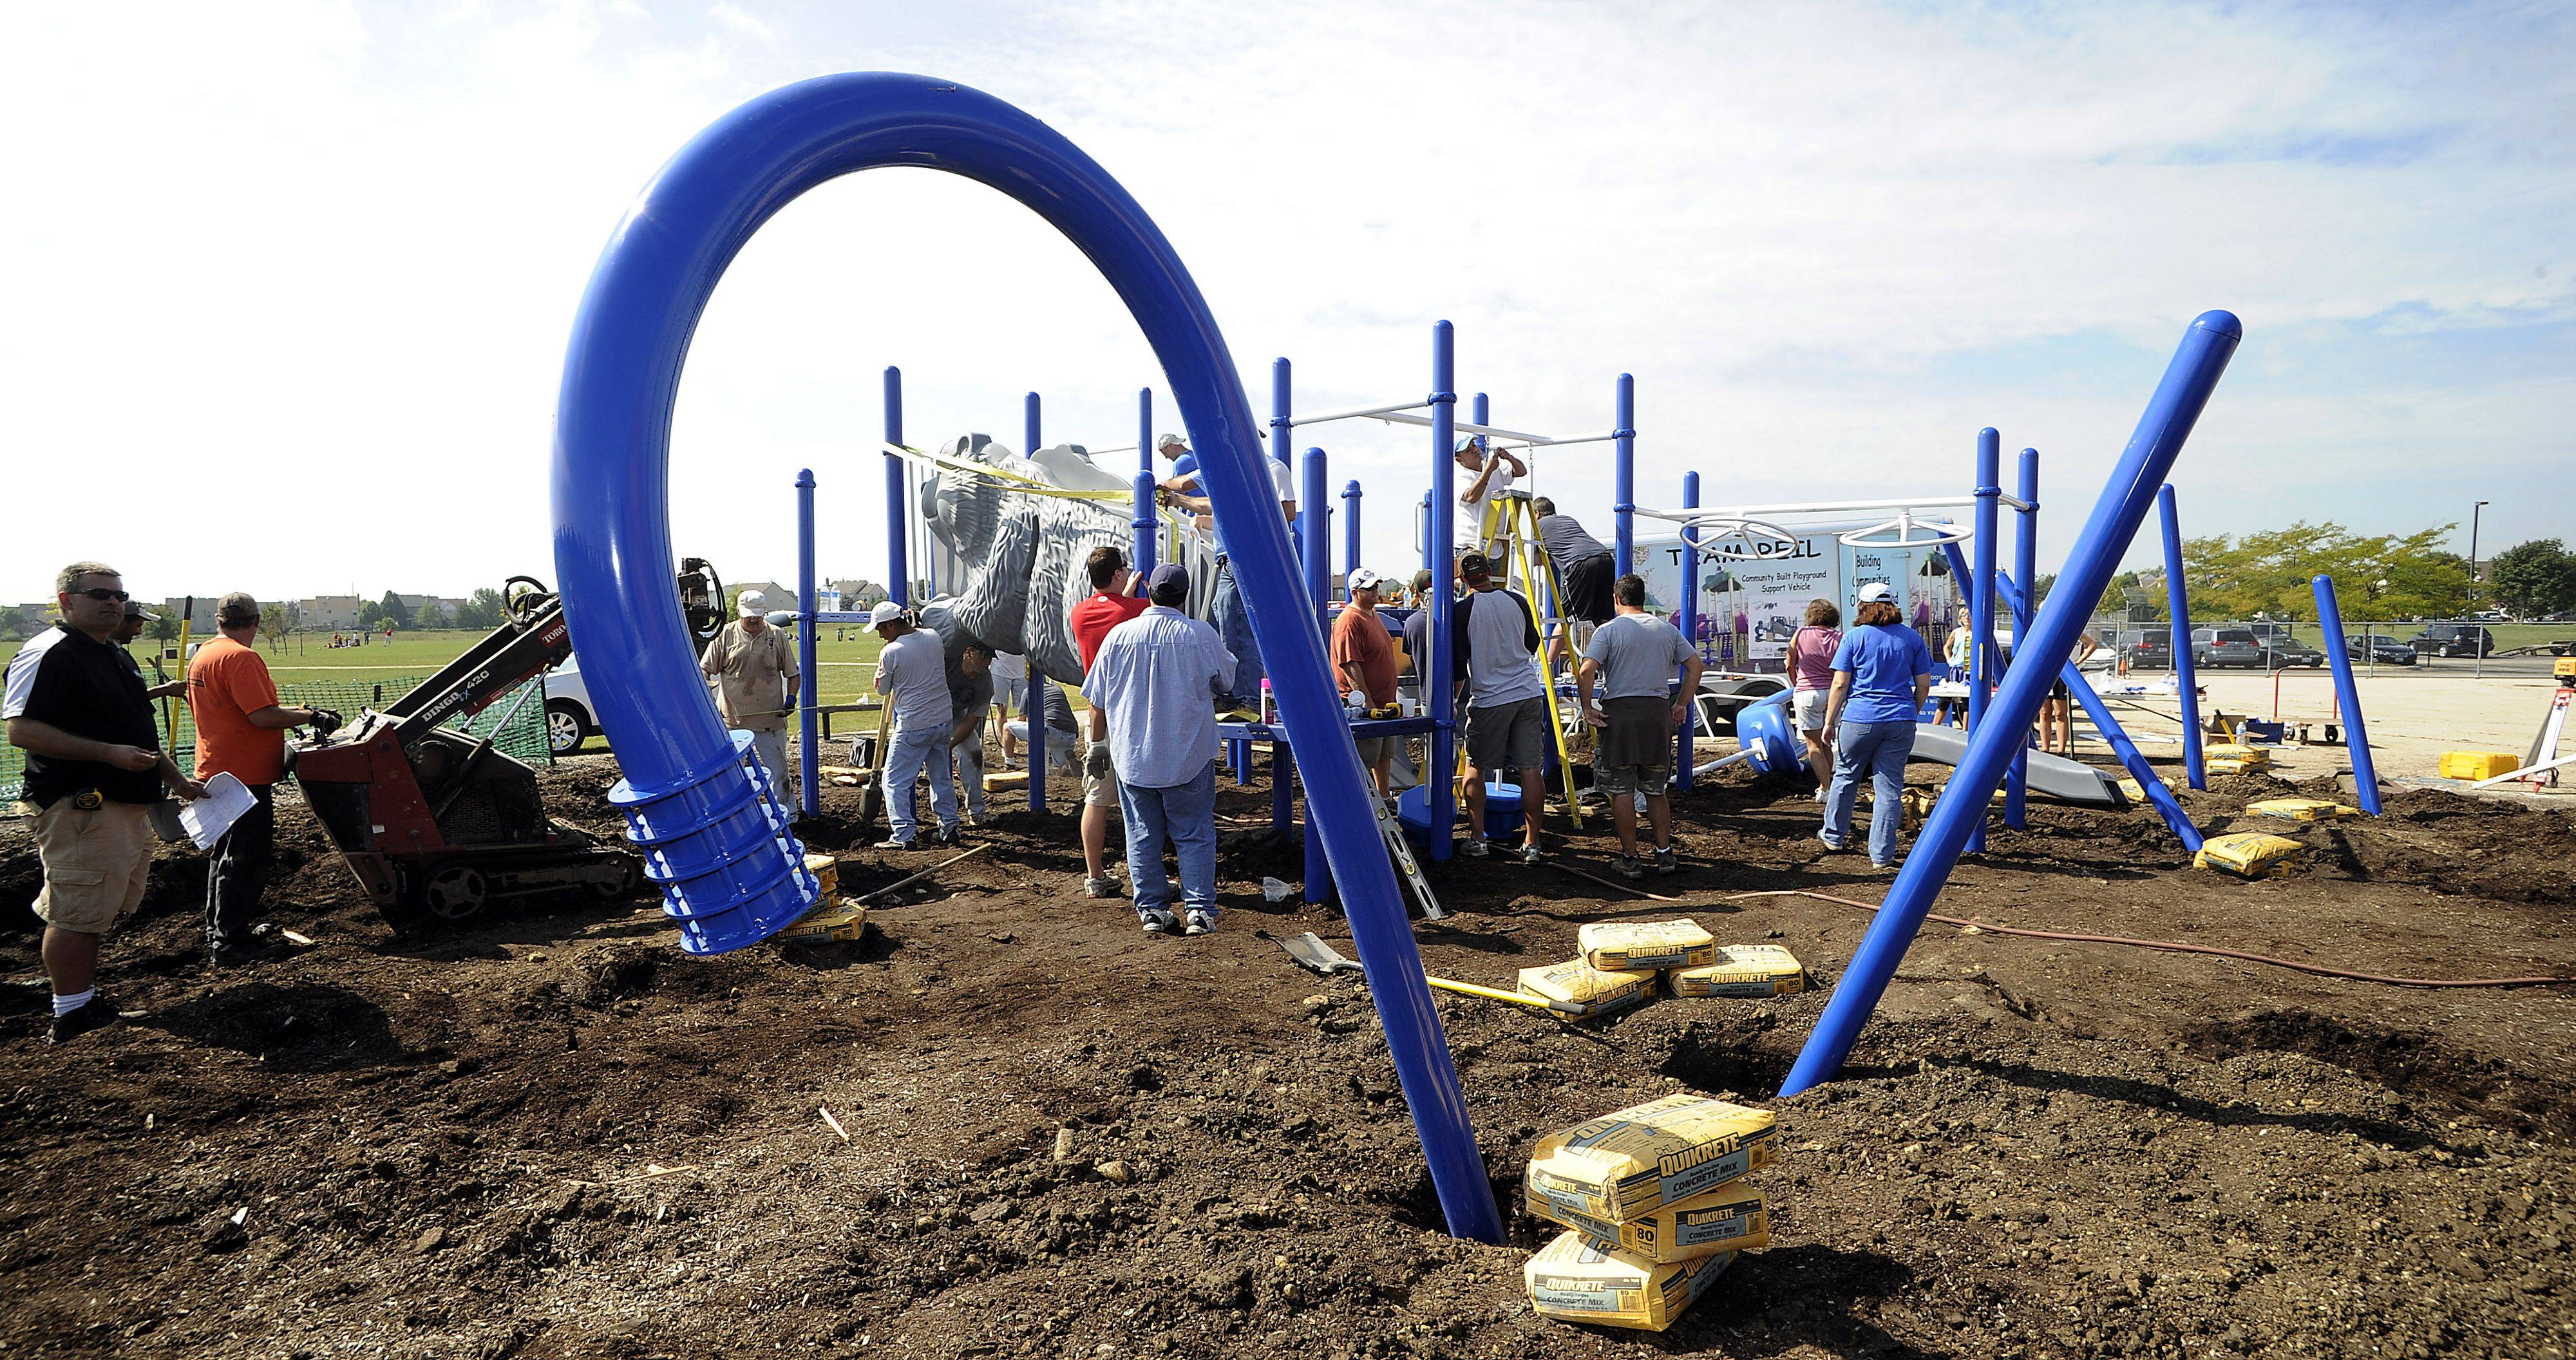 Poles of the playground set look like giant candy canes as parents of Nature Ridge Elementary School in Bartlett begin to build a new playground recently that was PTO-funded for all the kids in the school, including students with disabilities.